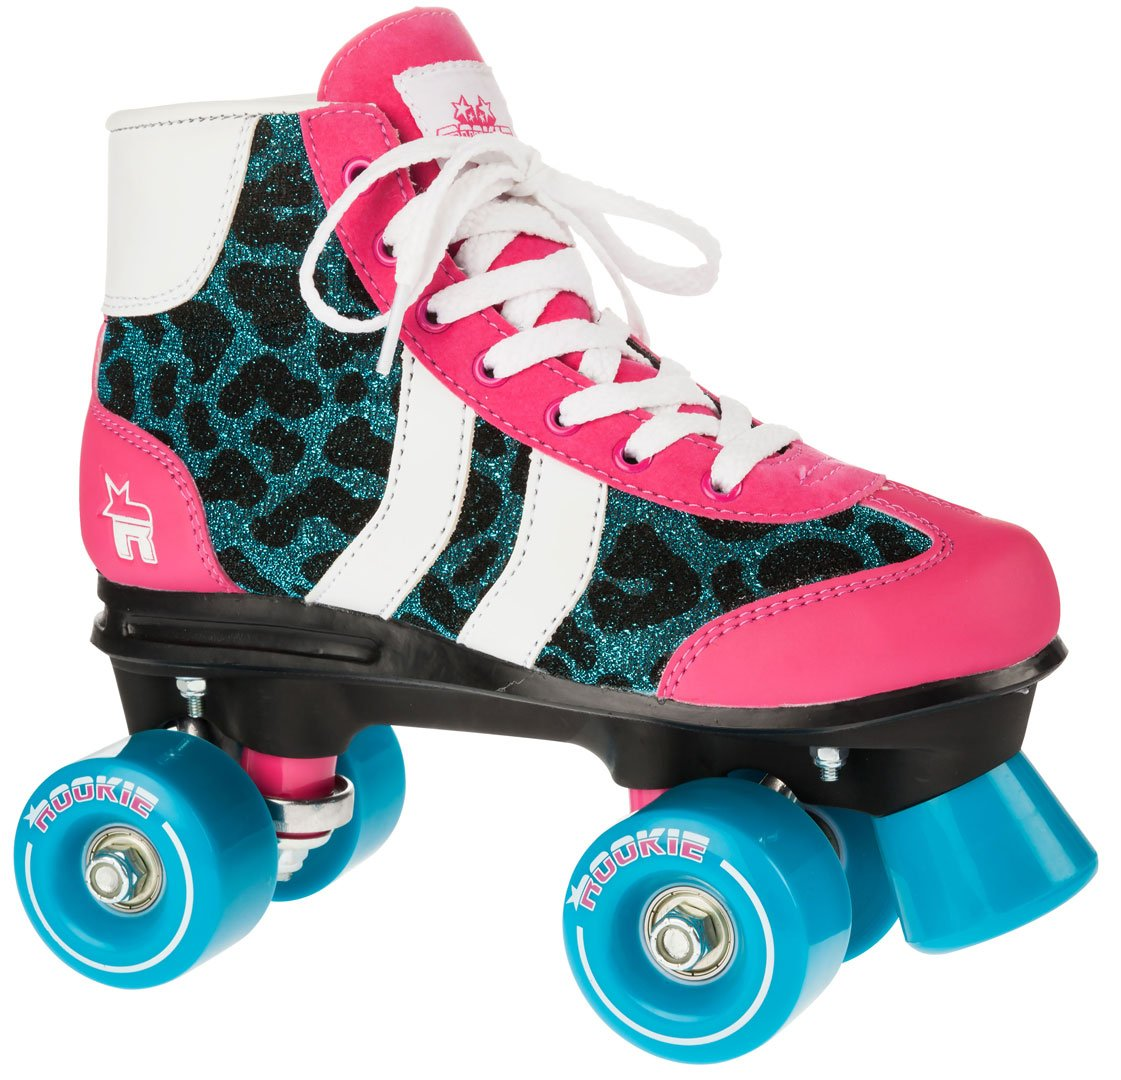 The Disco Rollers Roller Disco